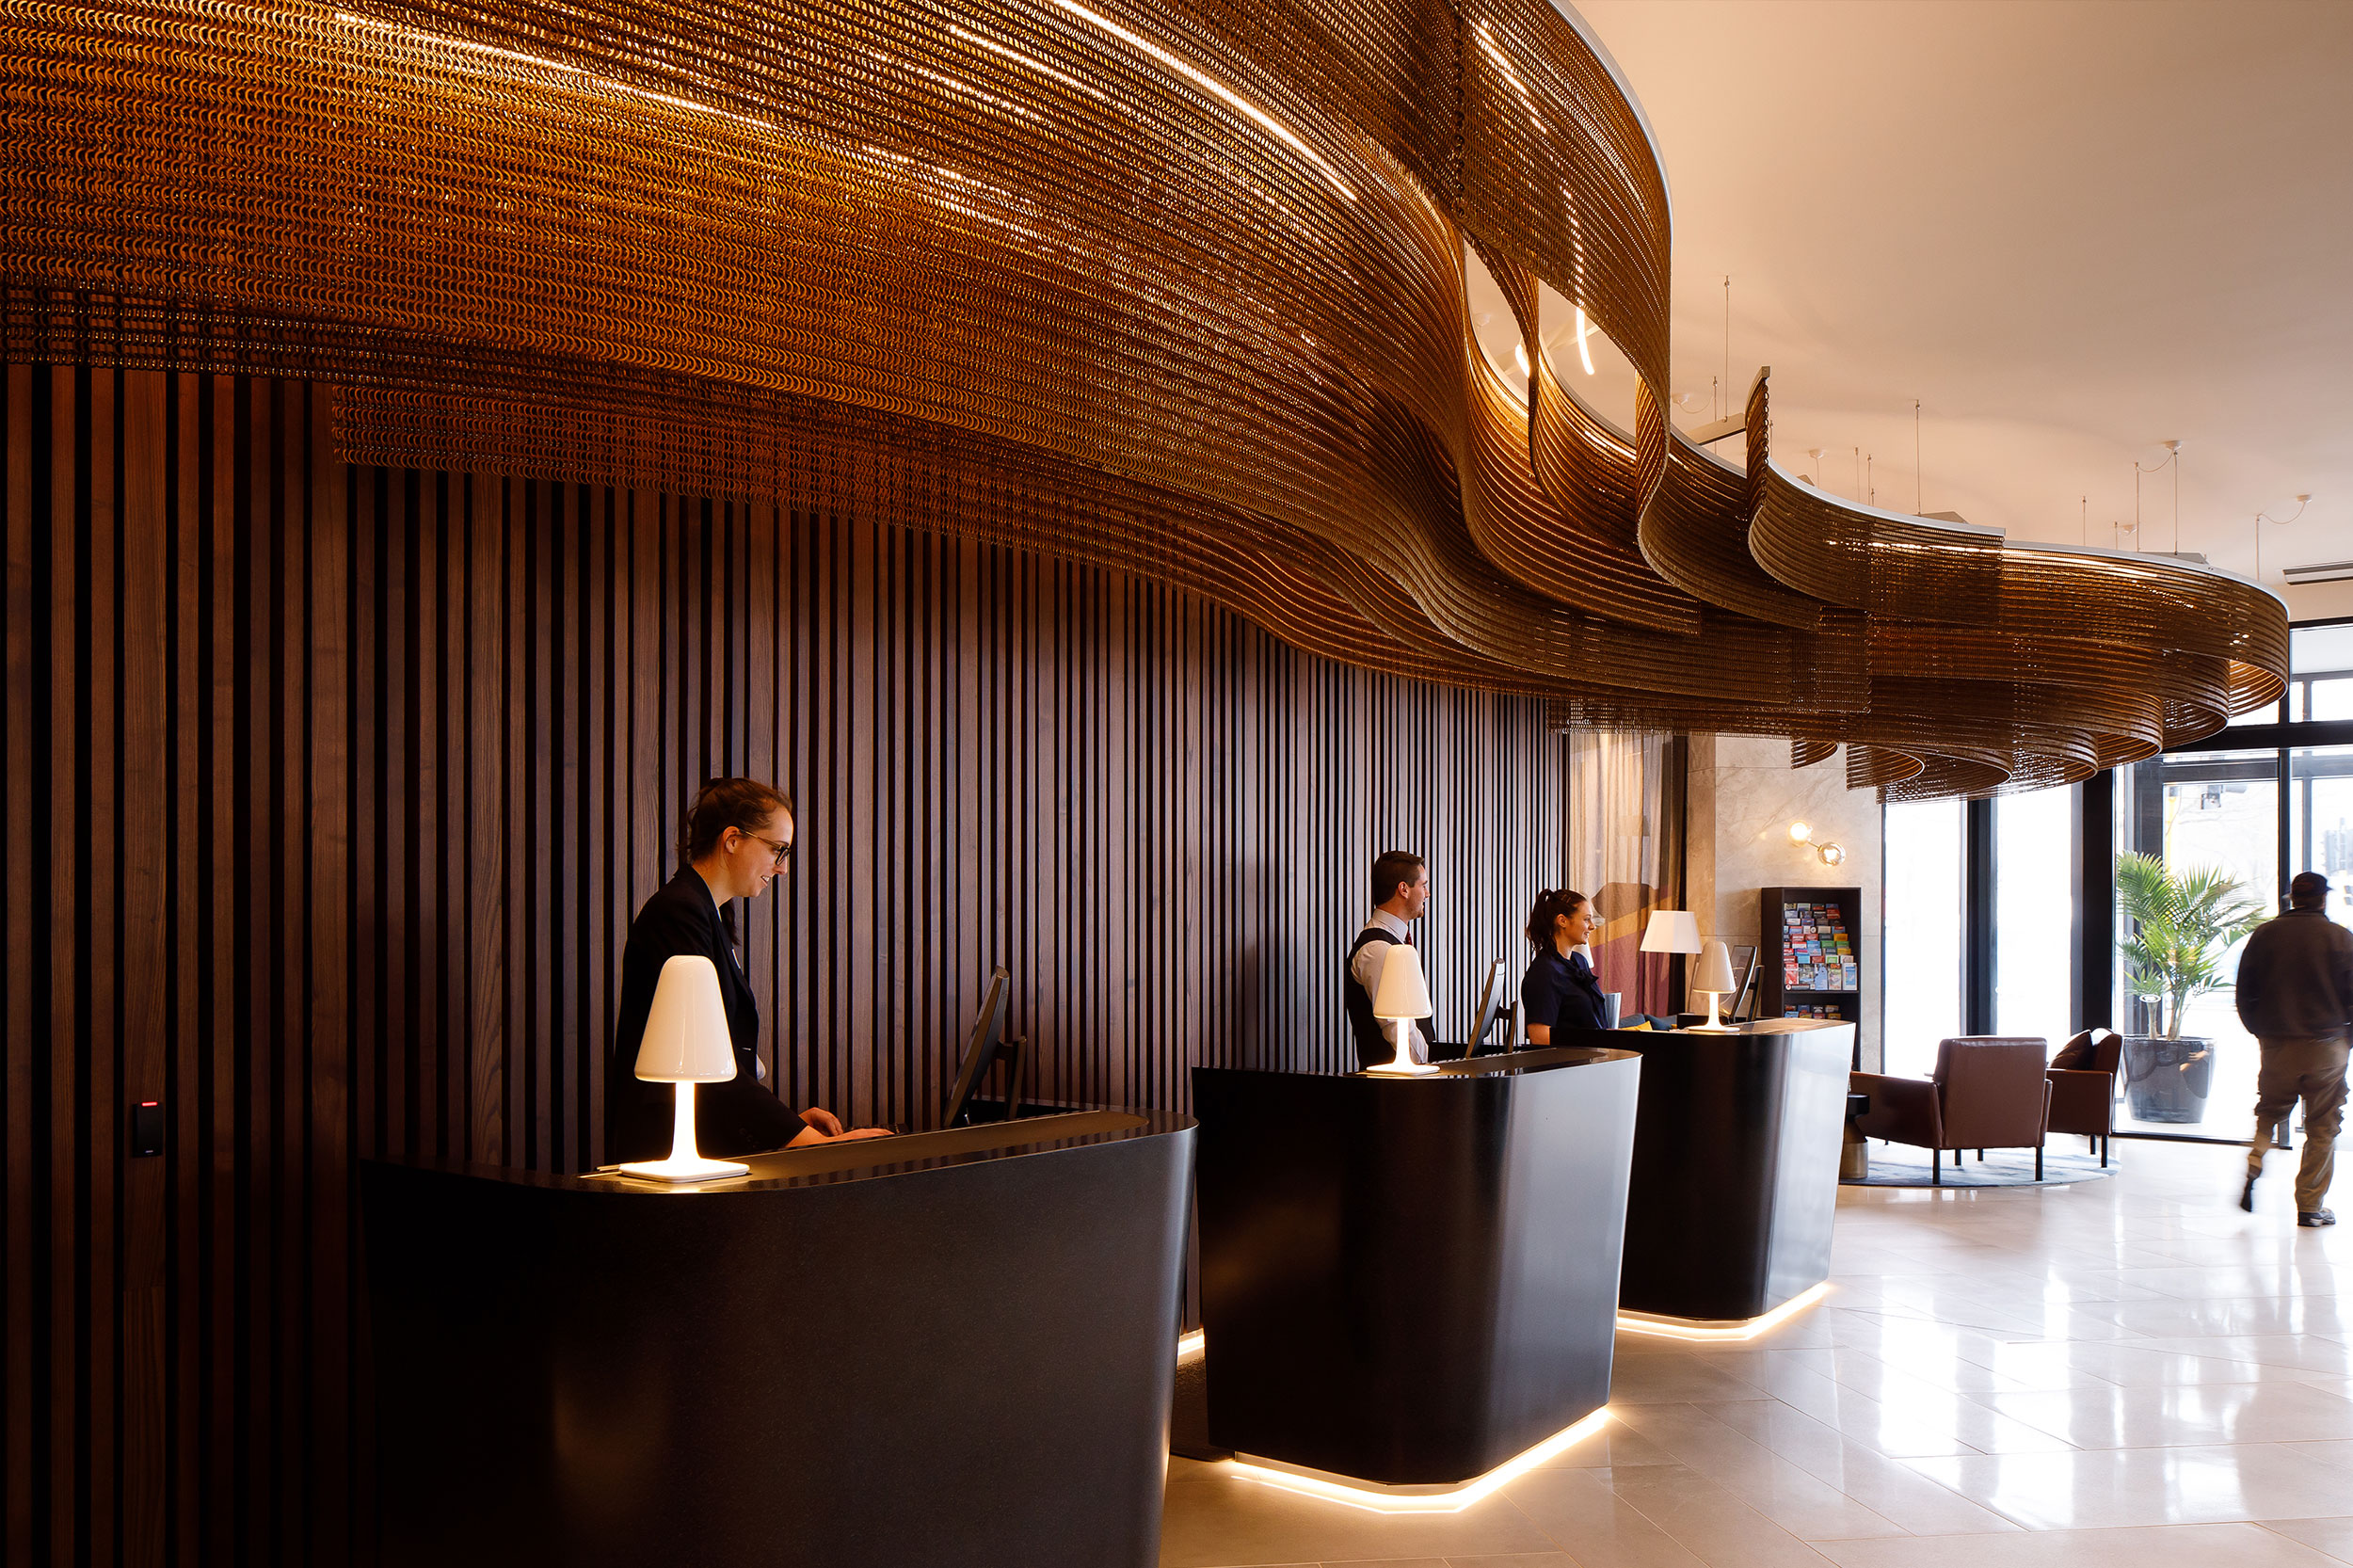 Sculptural Hotel Ceiling Feature for Crowne Plaza Hotel  Christchurch, New Zealand    Explore →